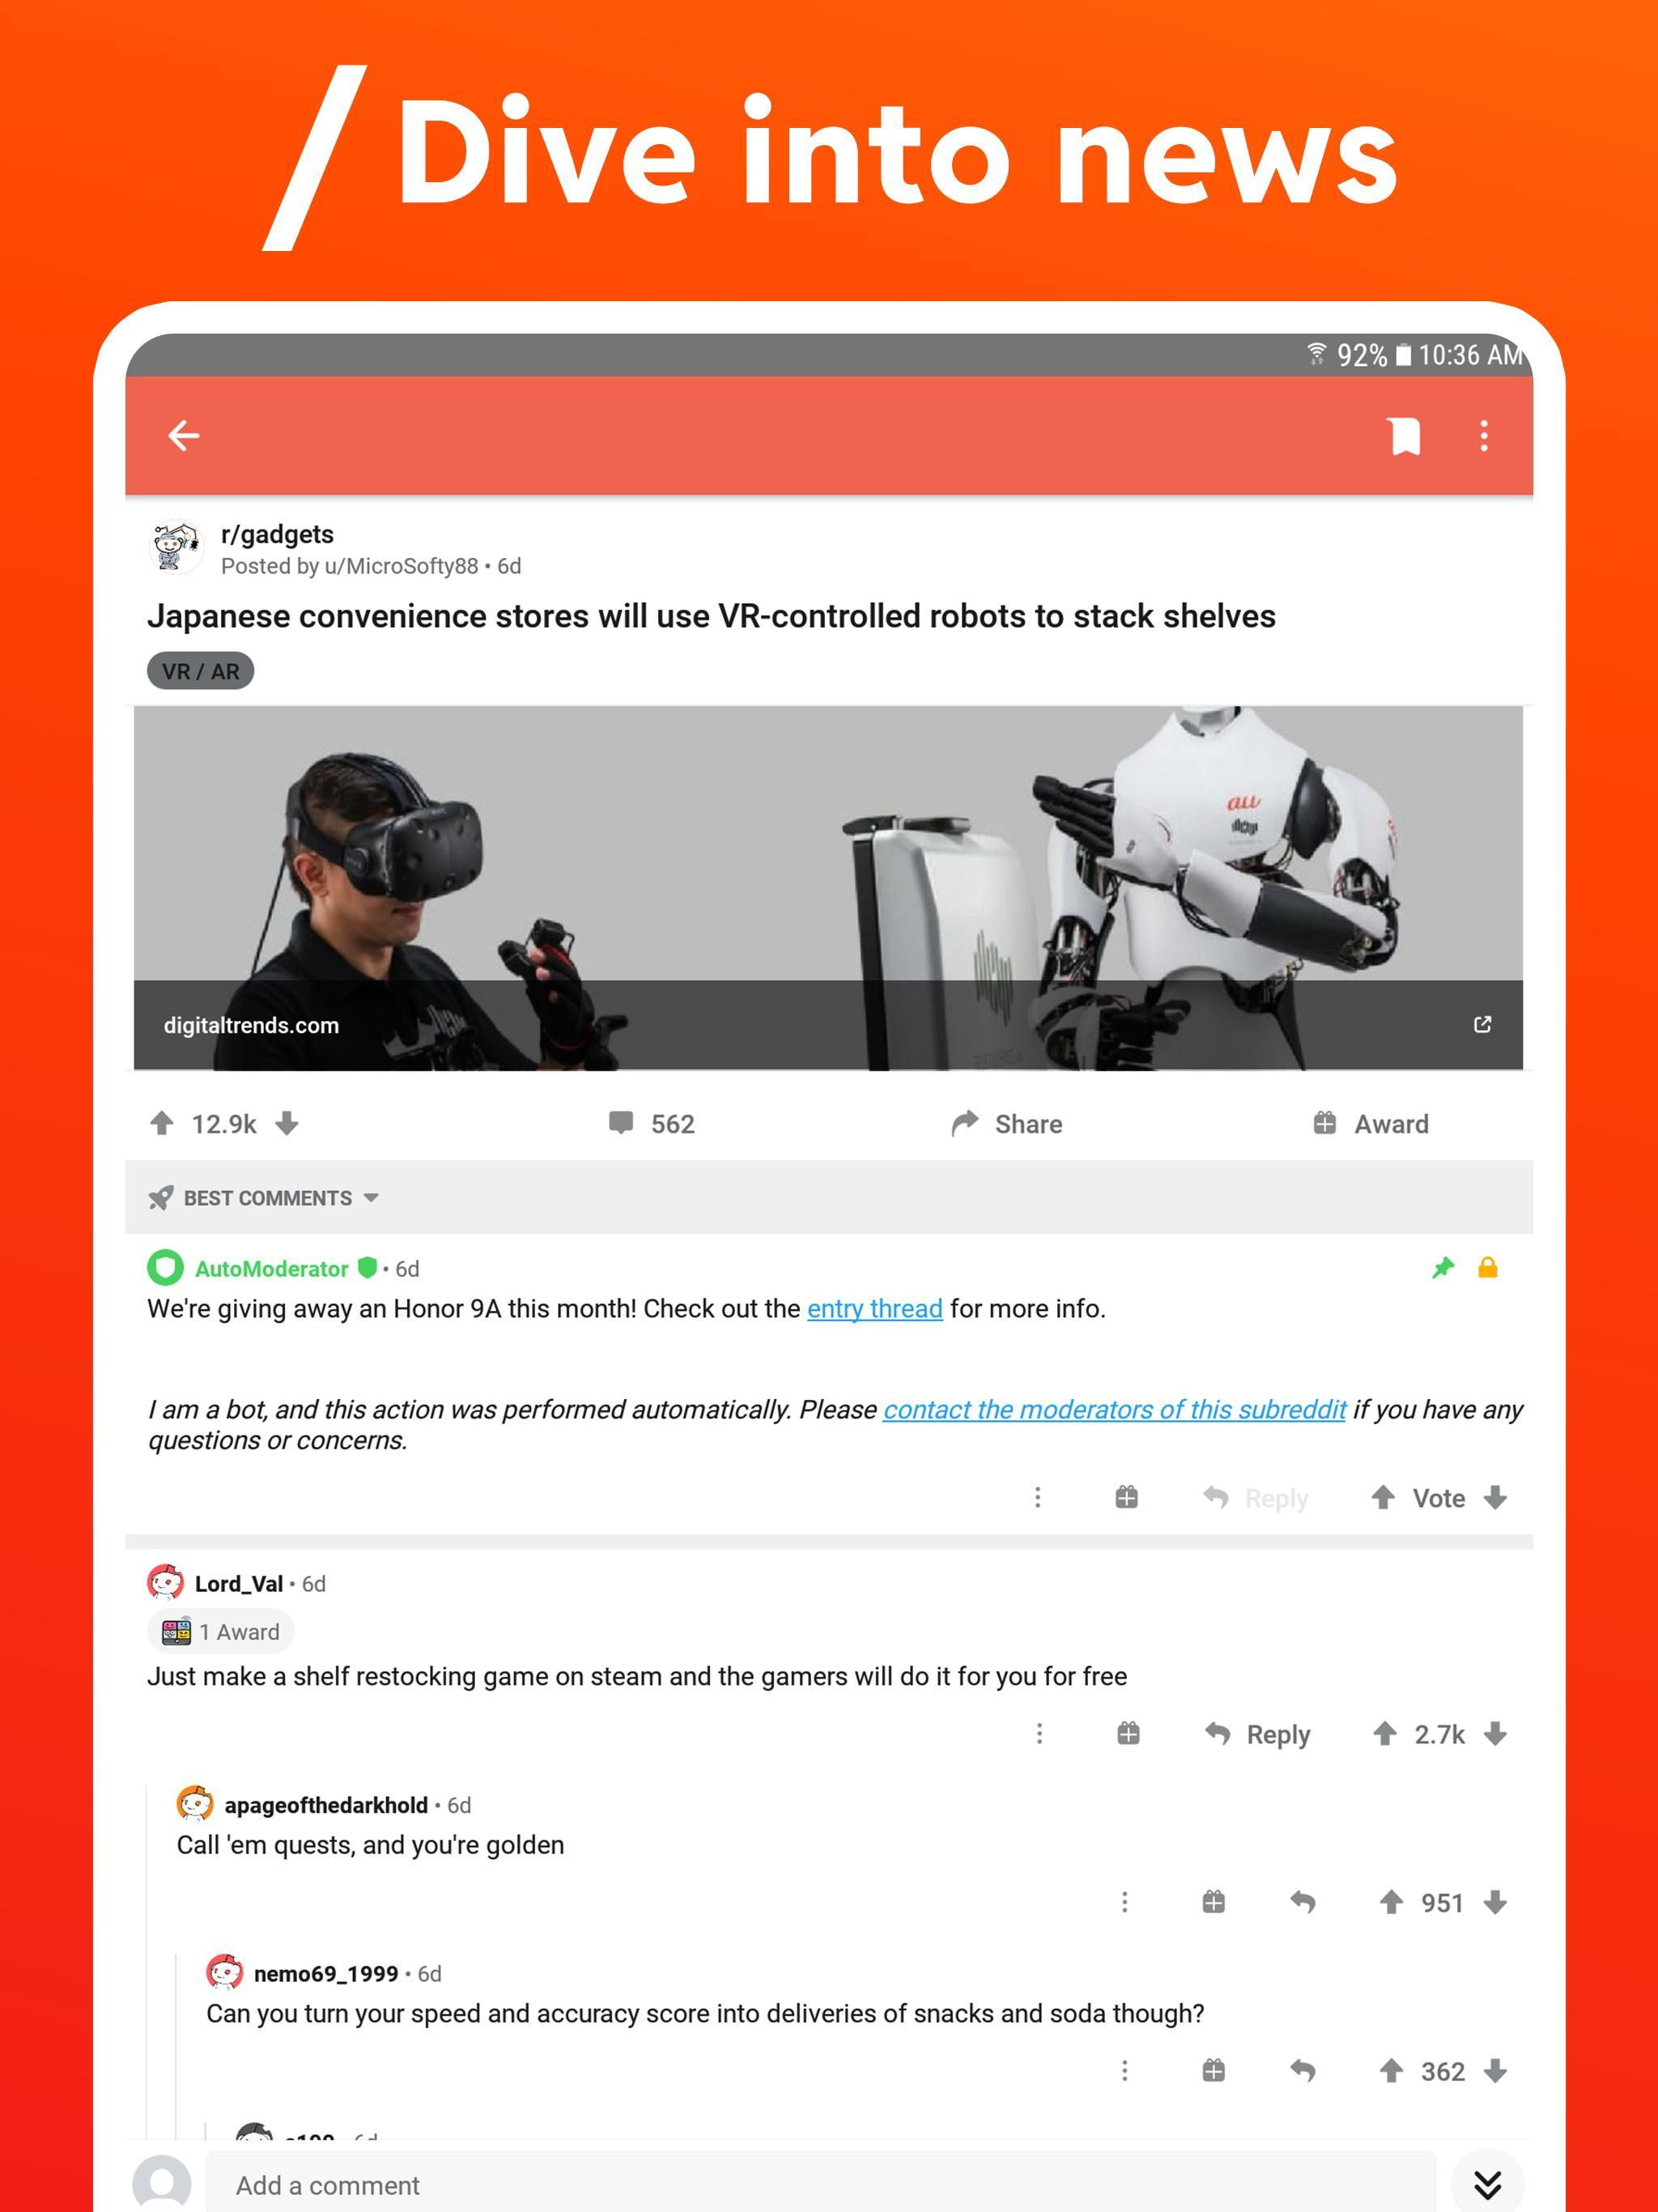 Reddit Apk Download Reddit Official App 2020 41 1 For Android